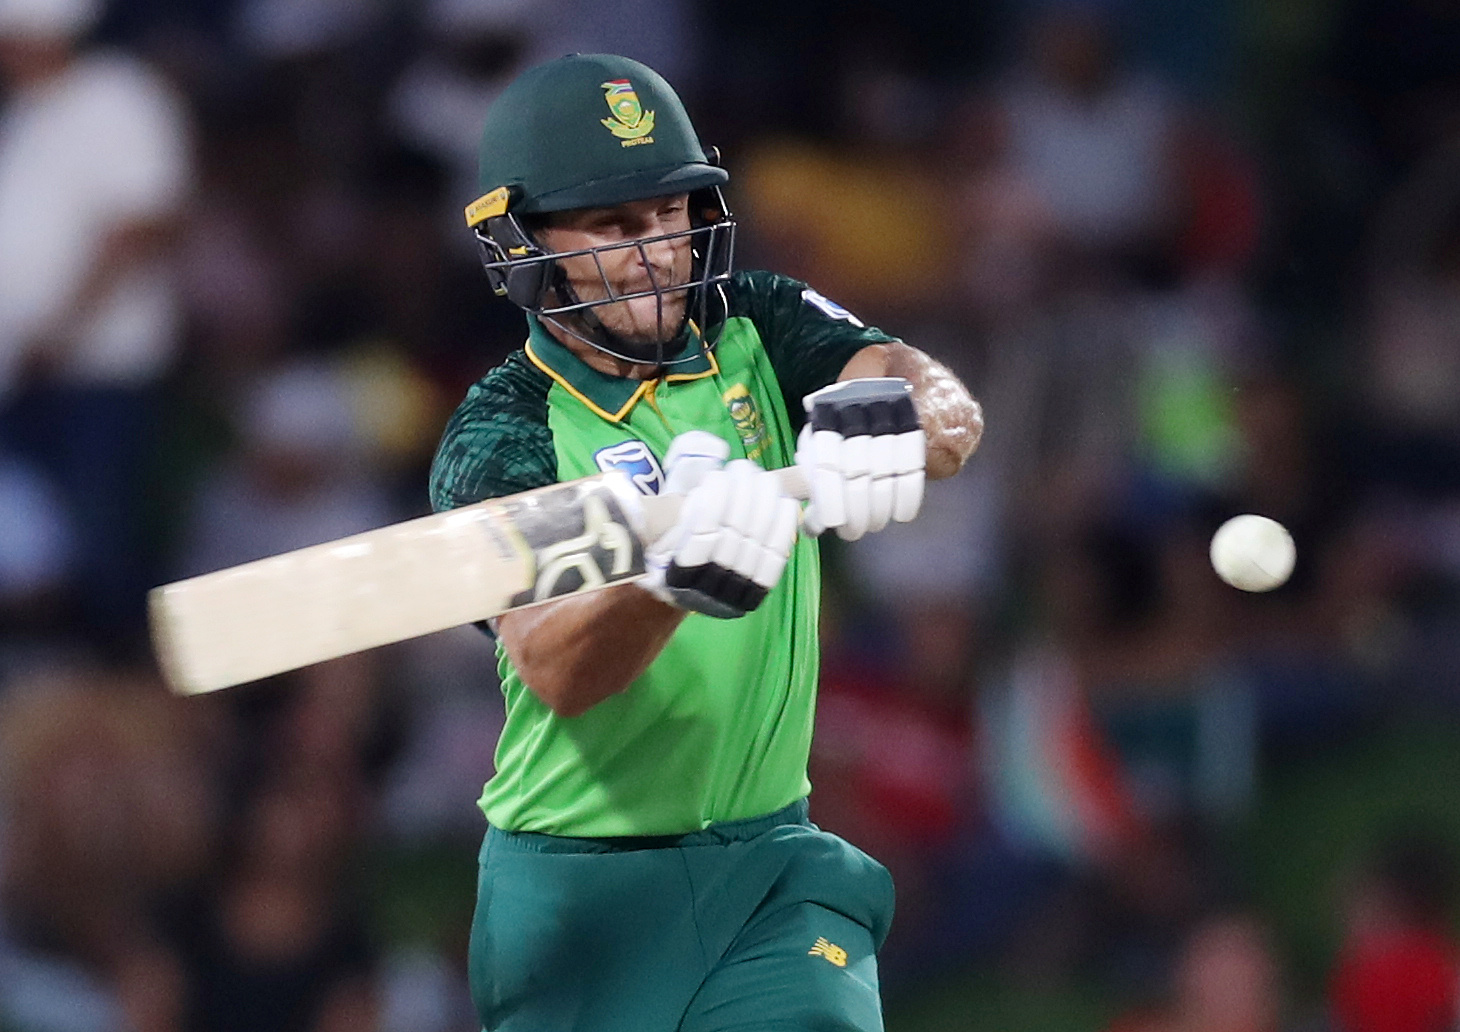 Cricket - South Africa v Australia - Second ODI - Mangaung Oval, Bloemfontein, South Africa - March 4, 2020   South Africa's Janneman Malan in action   REUTERS/Siphiwe Sibeko